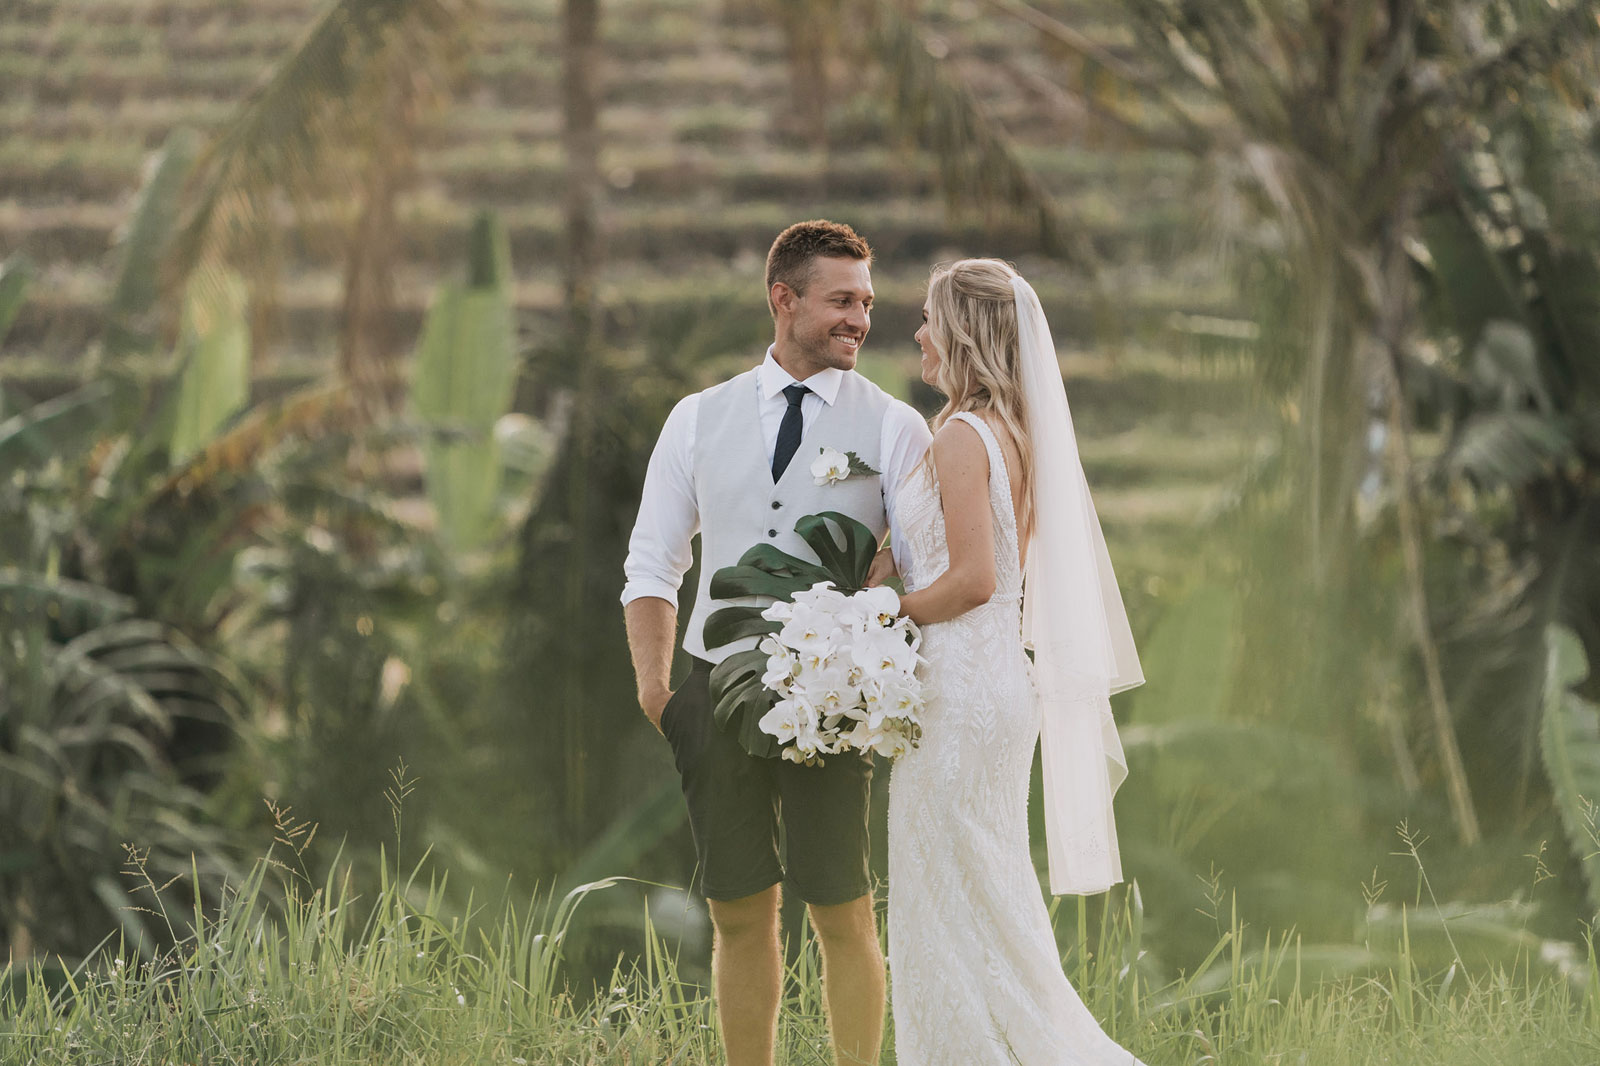 newfound-t-k-canggu-bali-ubud-wedding-photographer-601